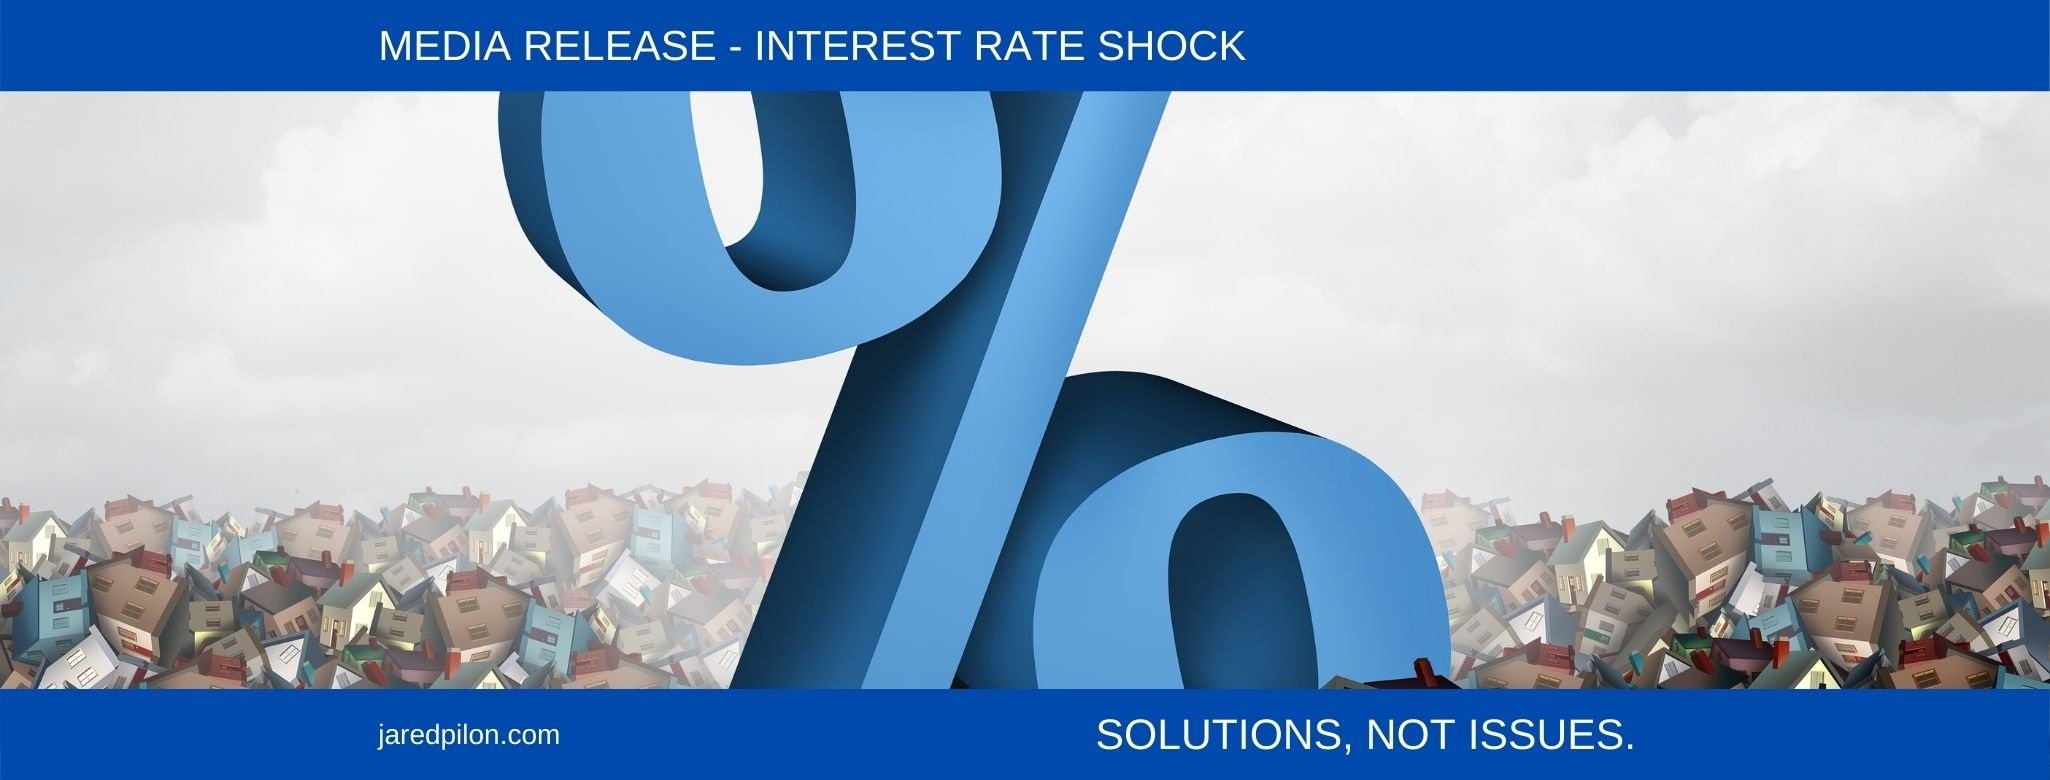 Interest Rate Shock